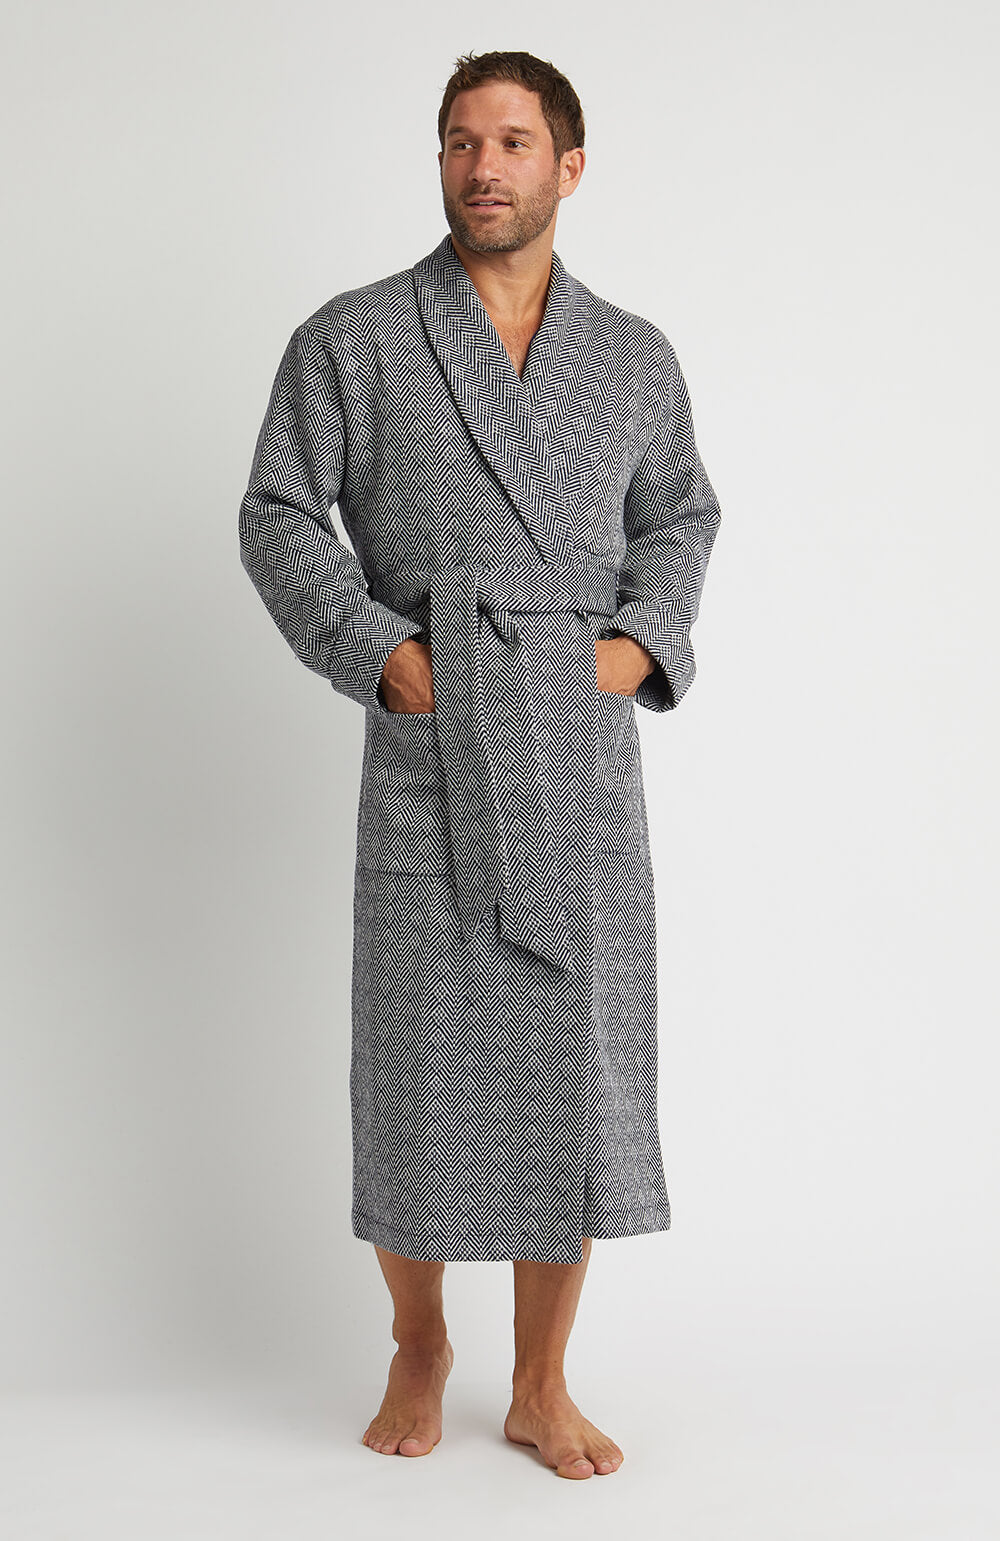 Silk-Lined Wool Robe (wlmd) - Navy Jacquard